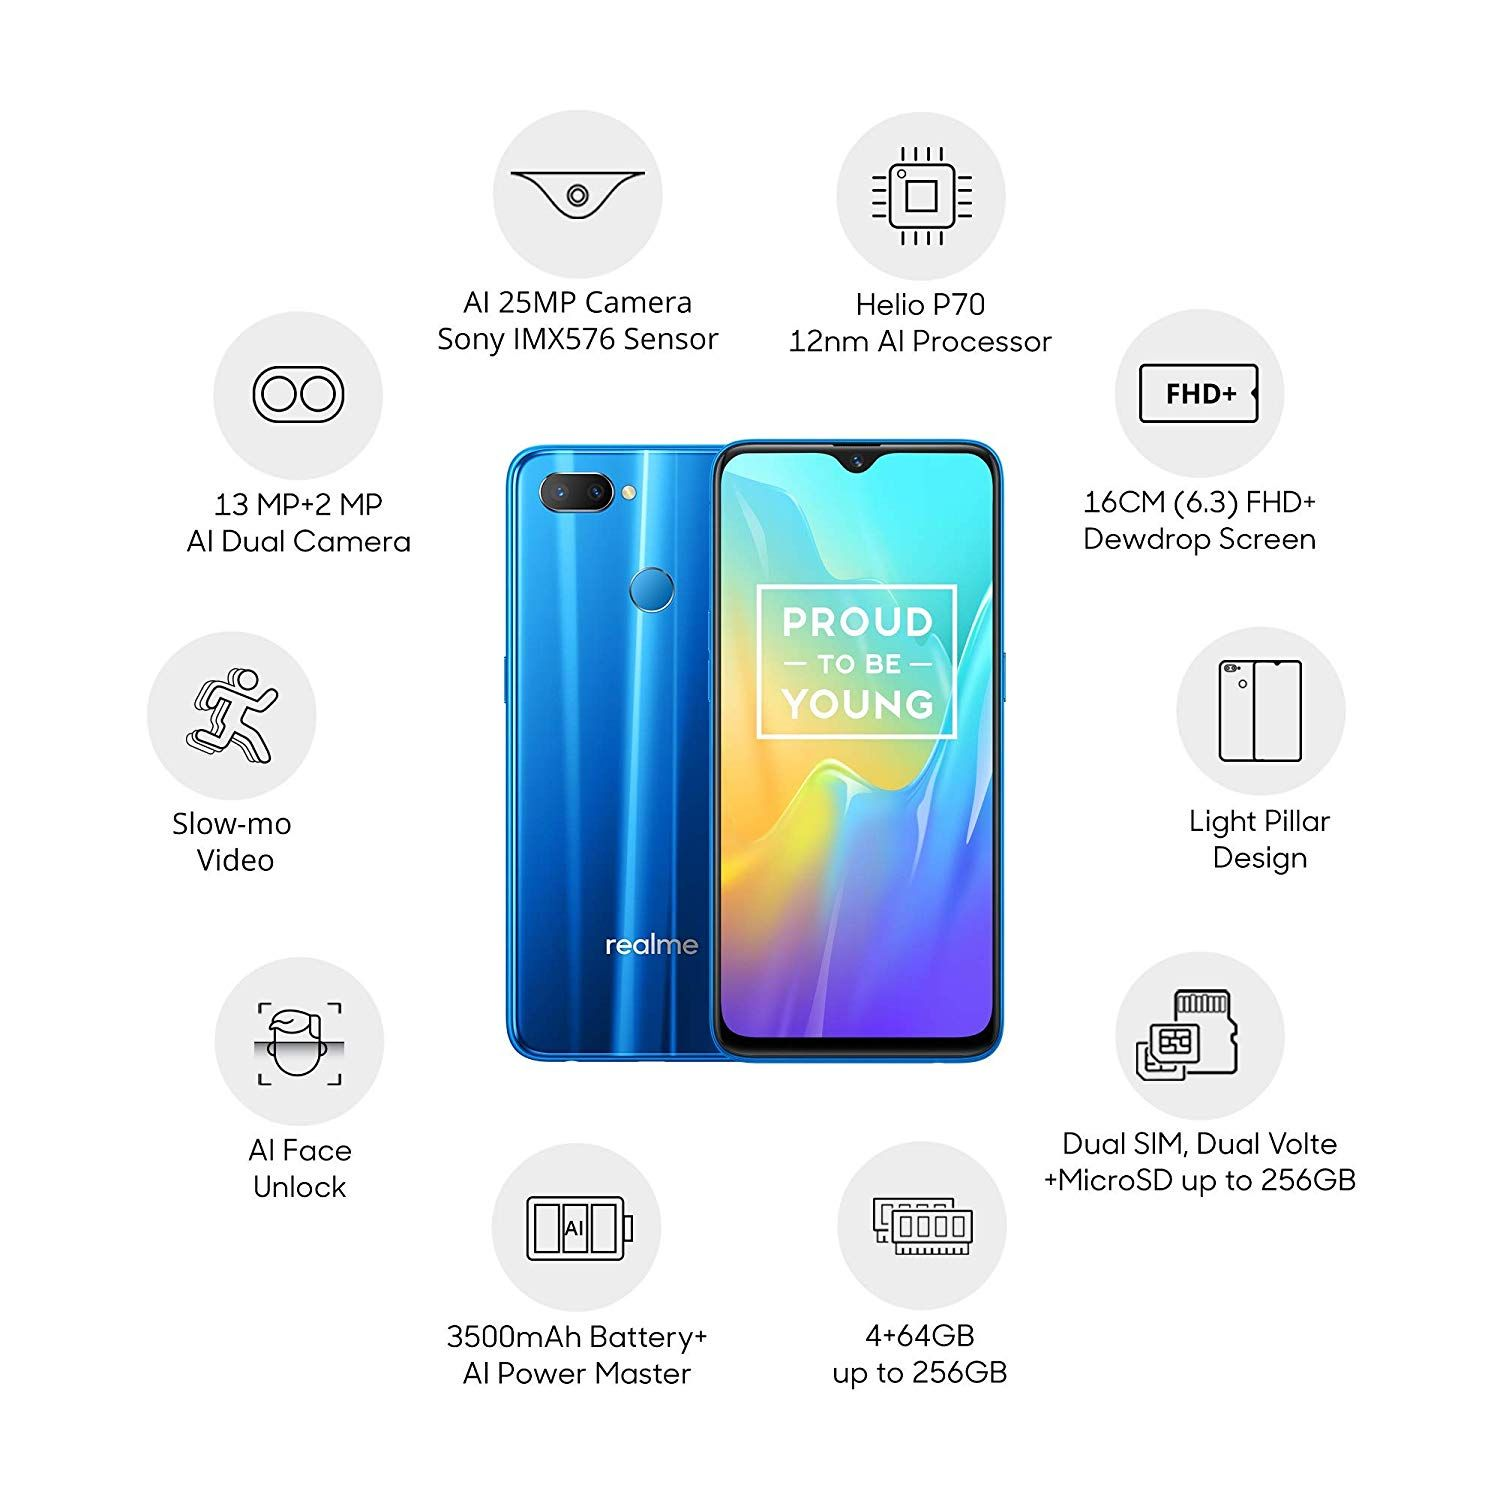 """The Realme U1 won wide recognition for its """"Power"""" and"""